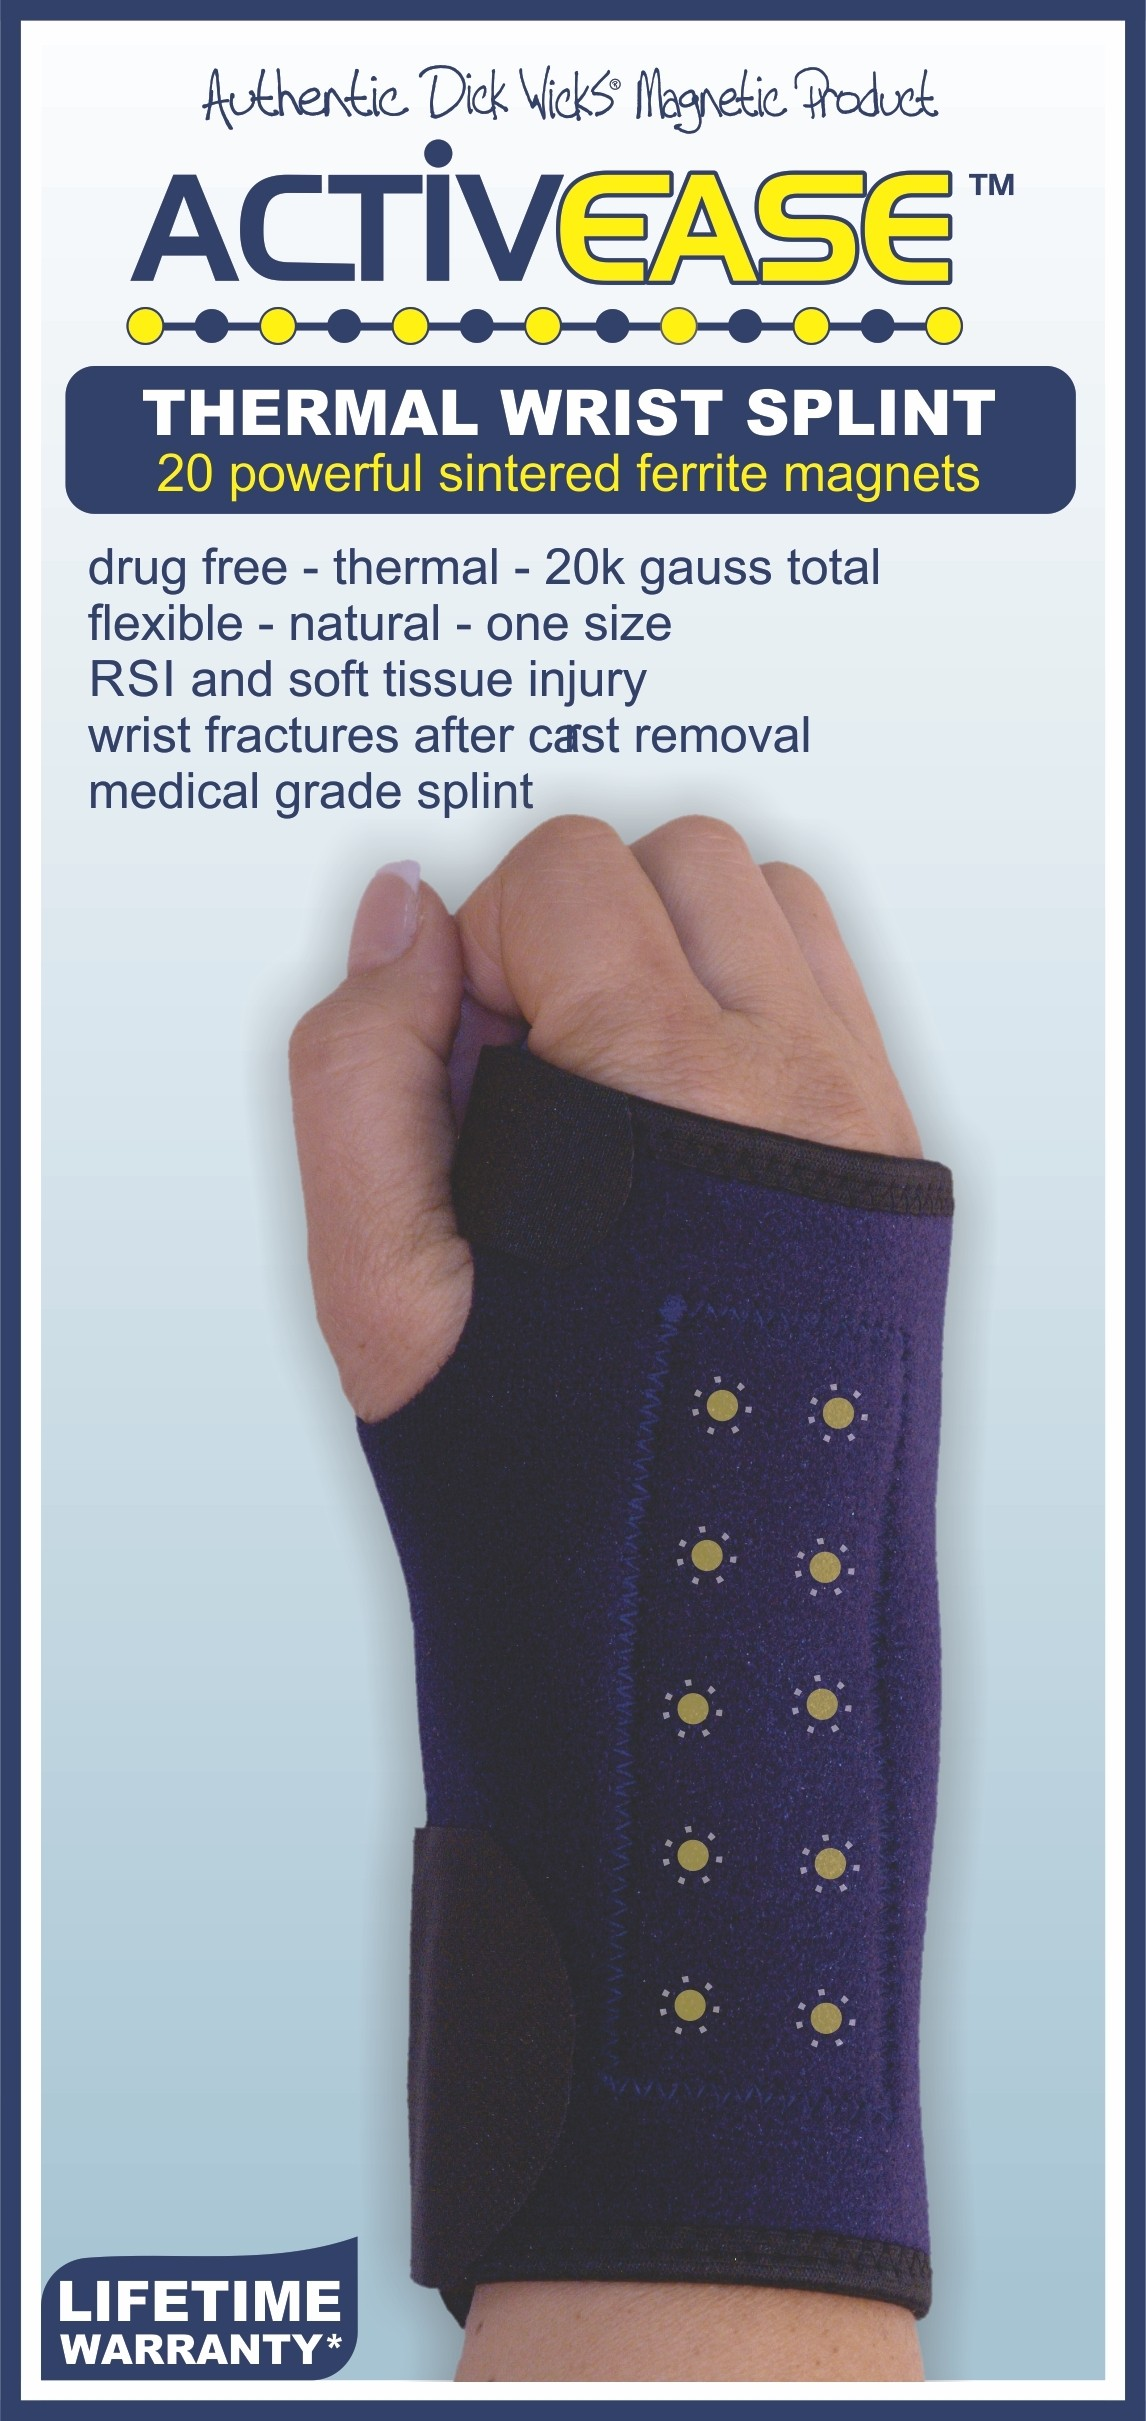 Activease Thermal Carpal Tunnel Wrist Splint with Magnets by Dick Wicks